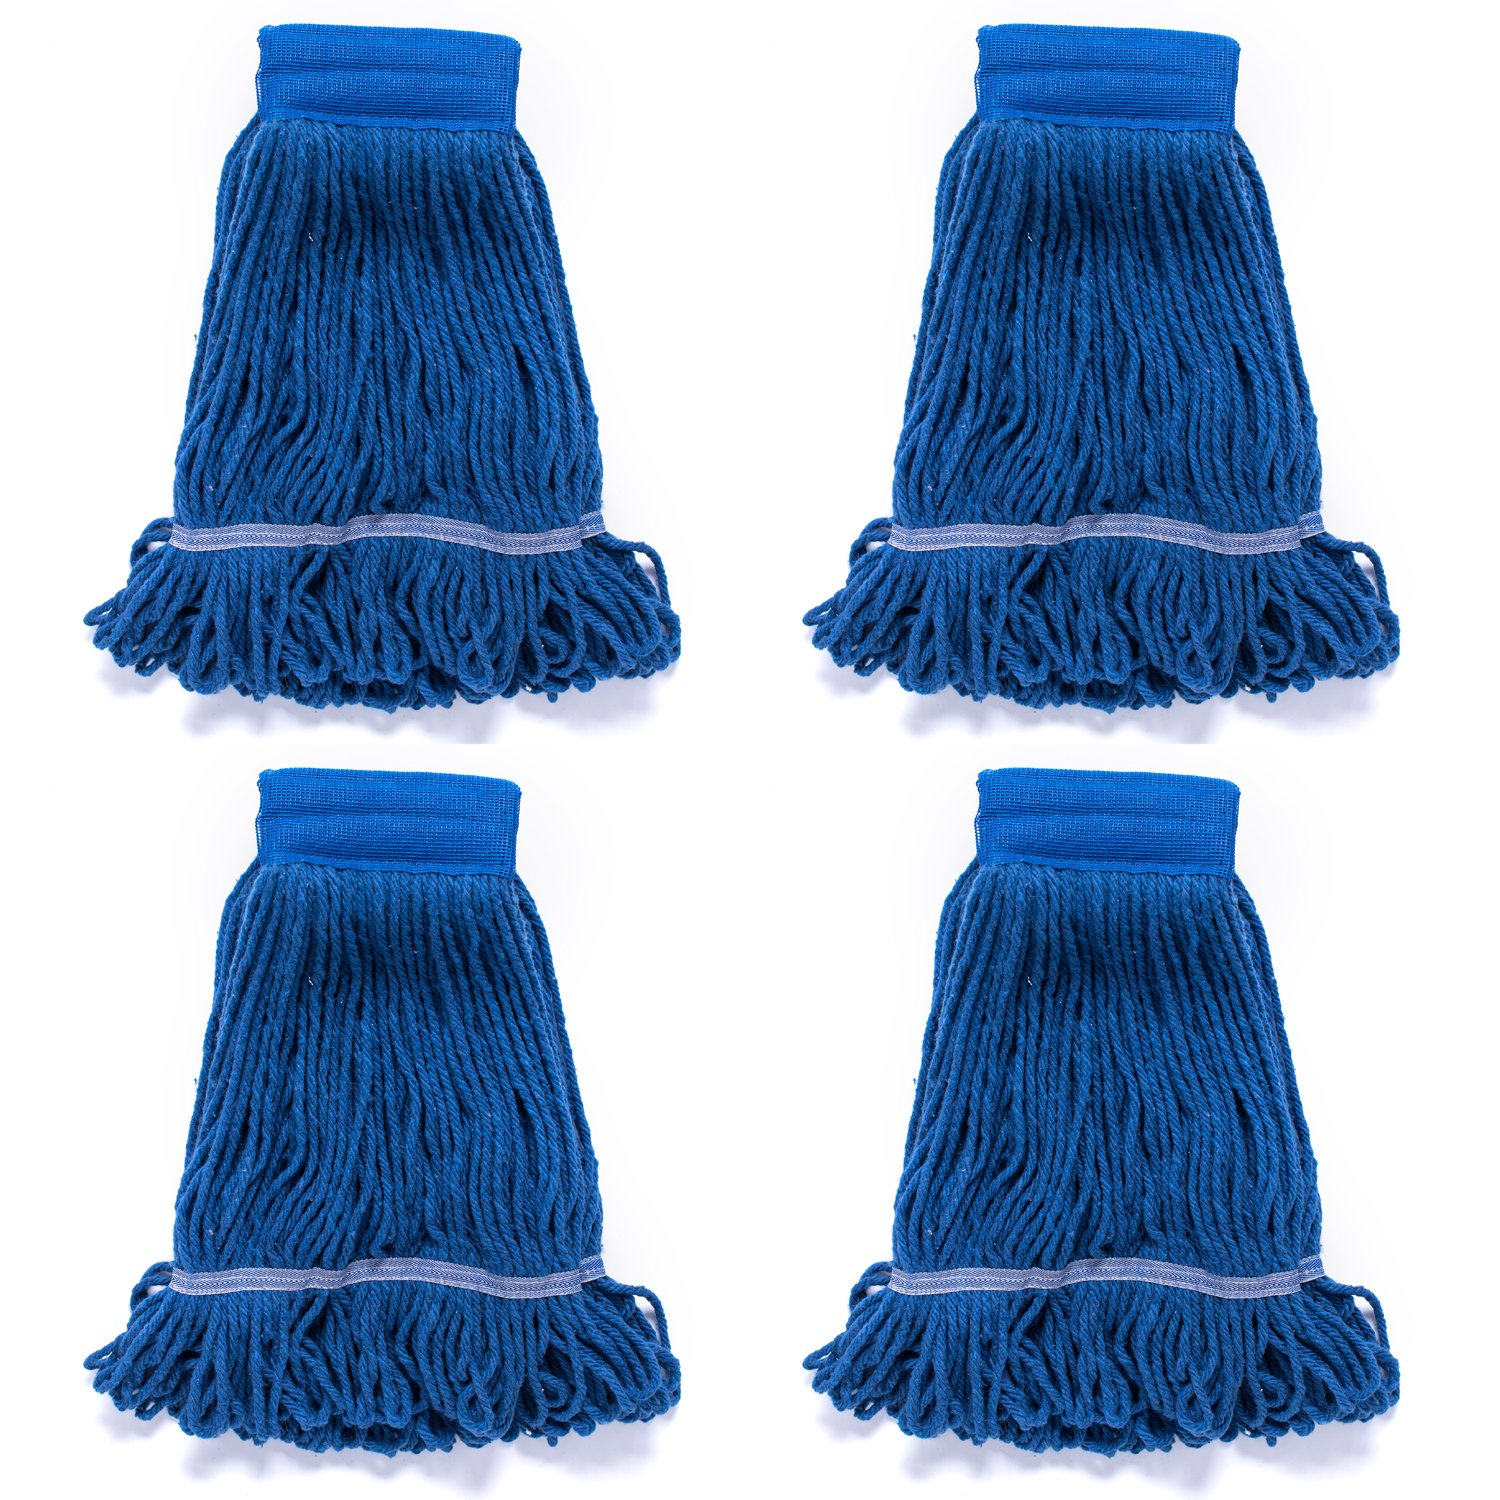 QIPENG 4 Pack 18'' Commercial Mop Heads Wet Saddle Mop Head Refill, Cotton/Synthetic, Large Size, for Home, Commercial, and Industrial Use, Blue